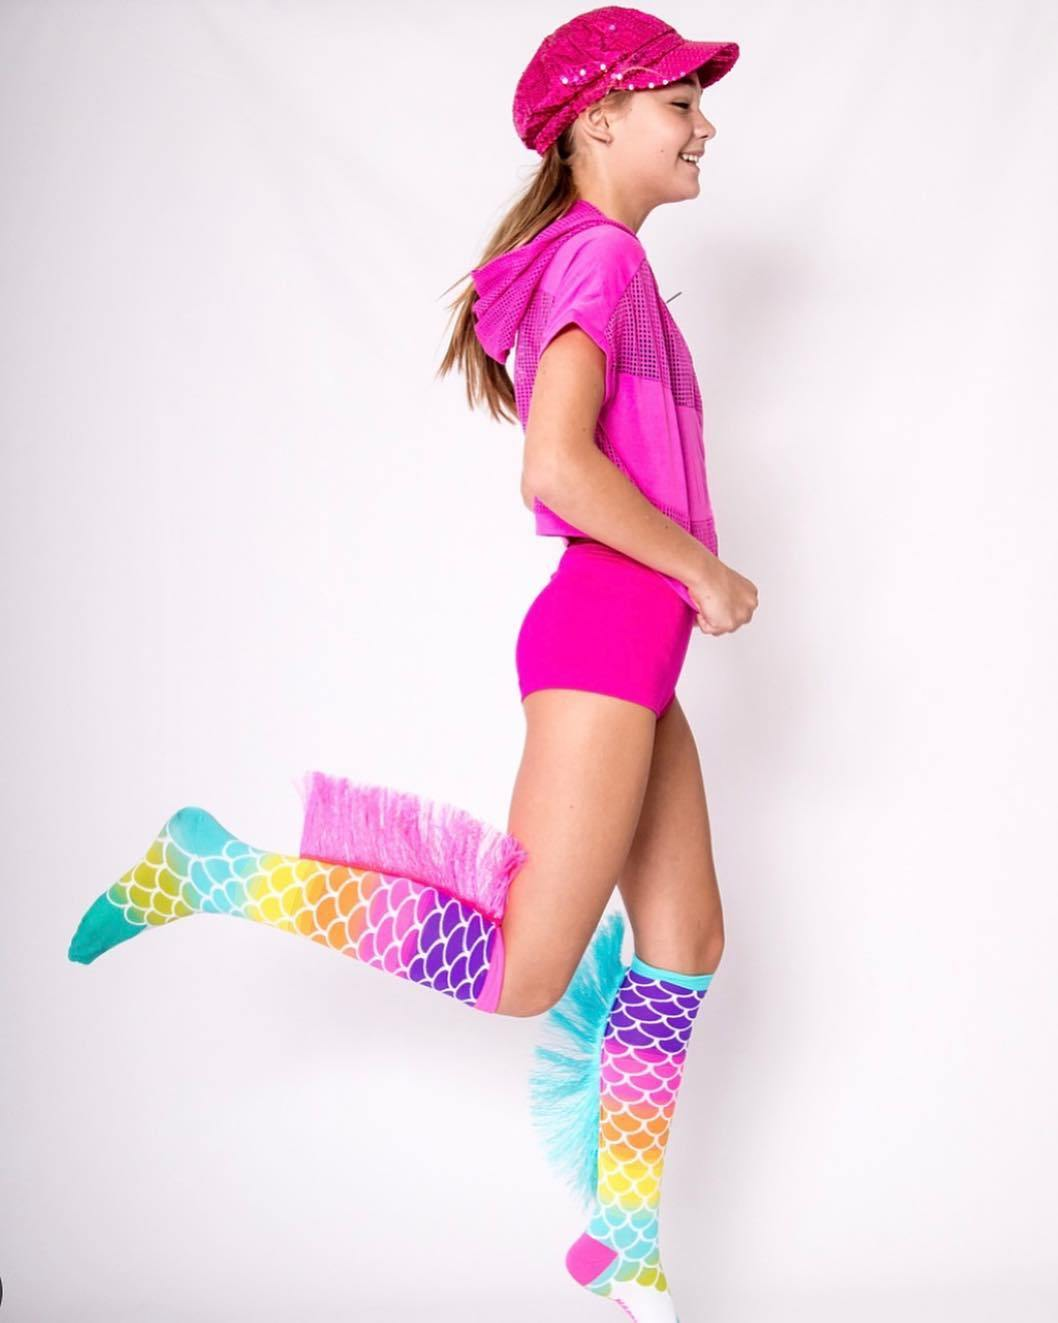 MERMAID MadMia Socks